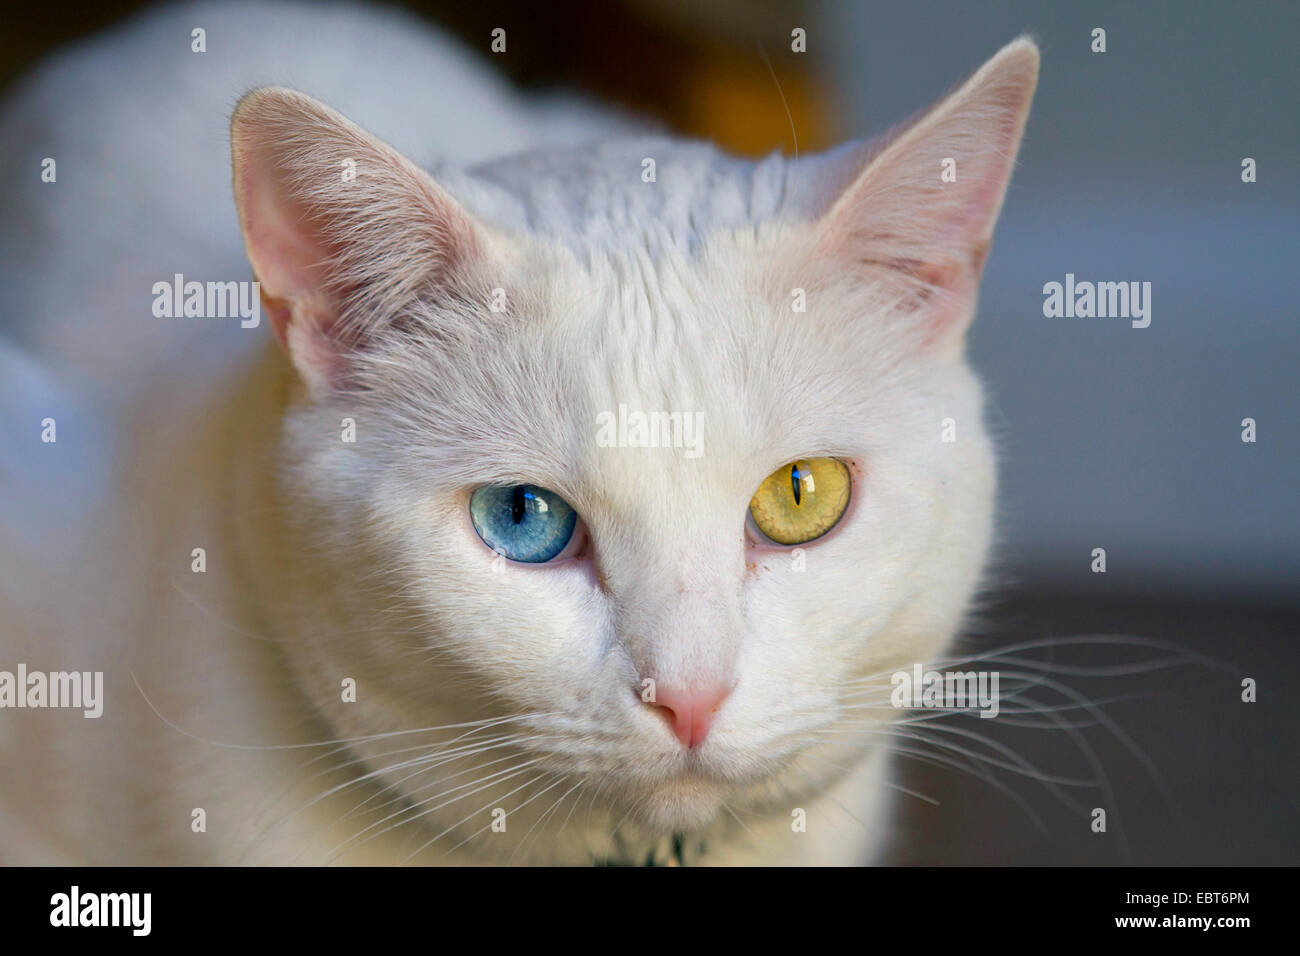 23ba5fa9a4 Turkish Van Stock Photos   Turkish Van Stock Images - Alamy